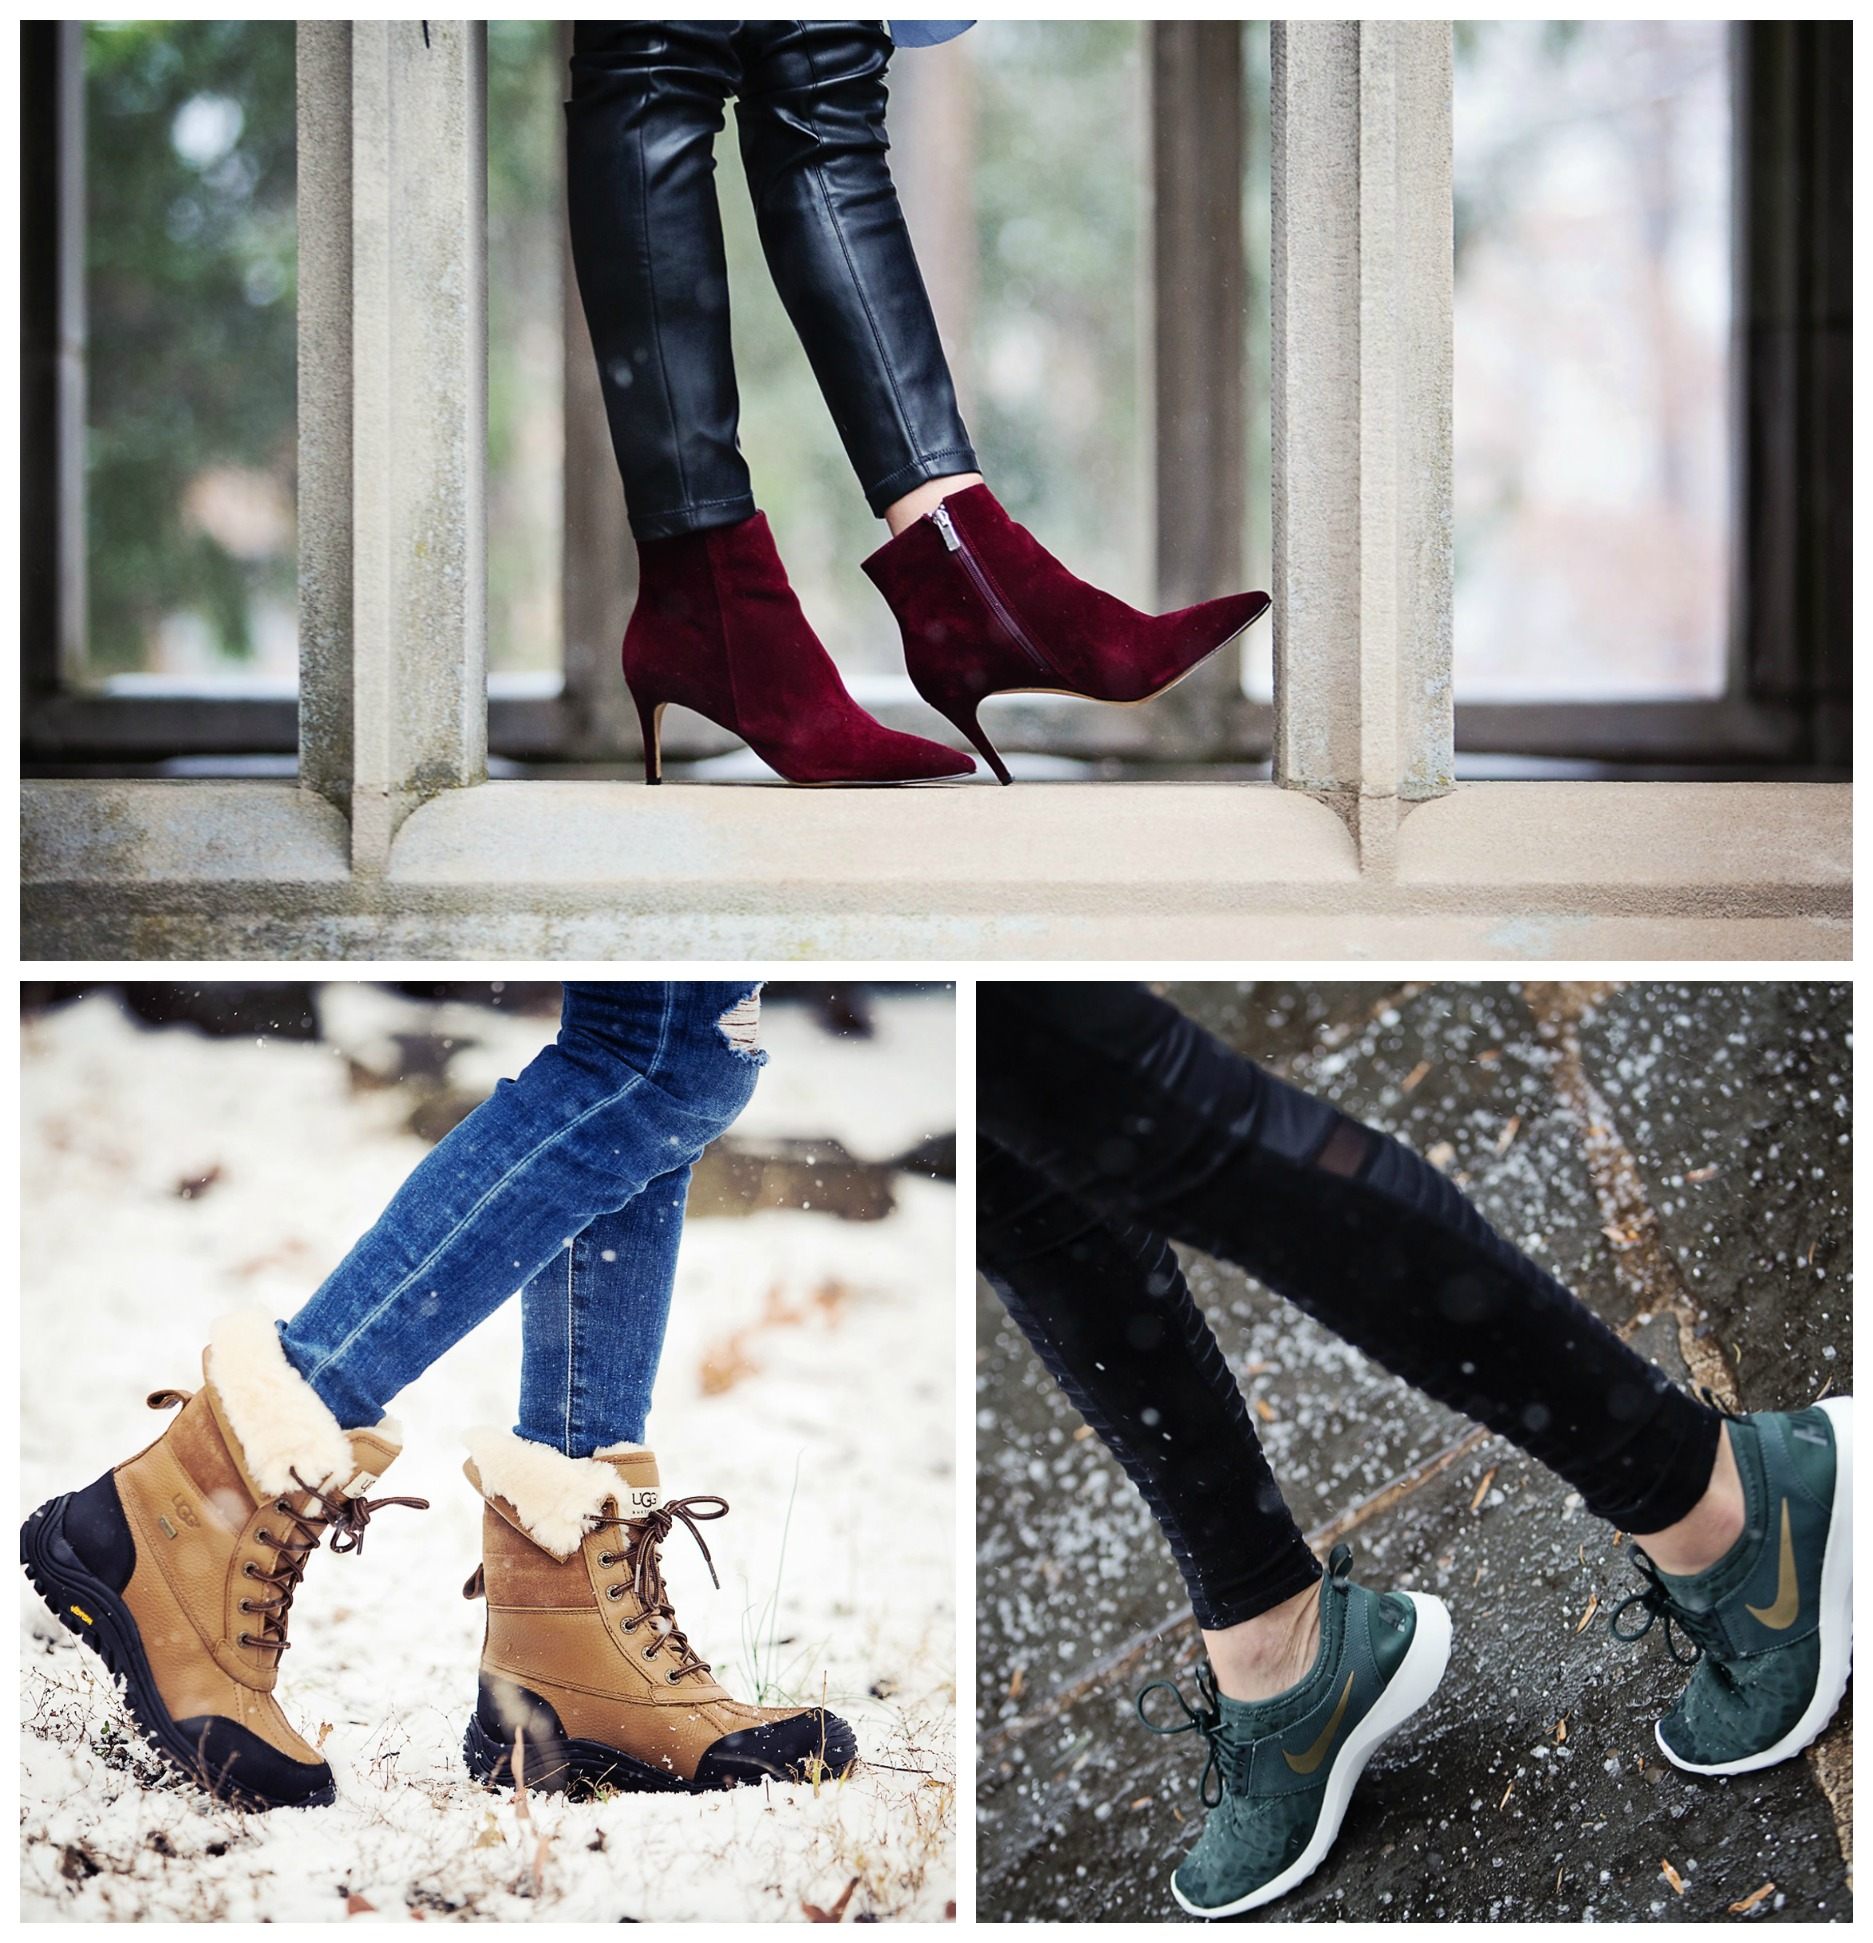 c345f6f44ea Gifts for Shoe Lovers - The Motherchic